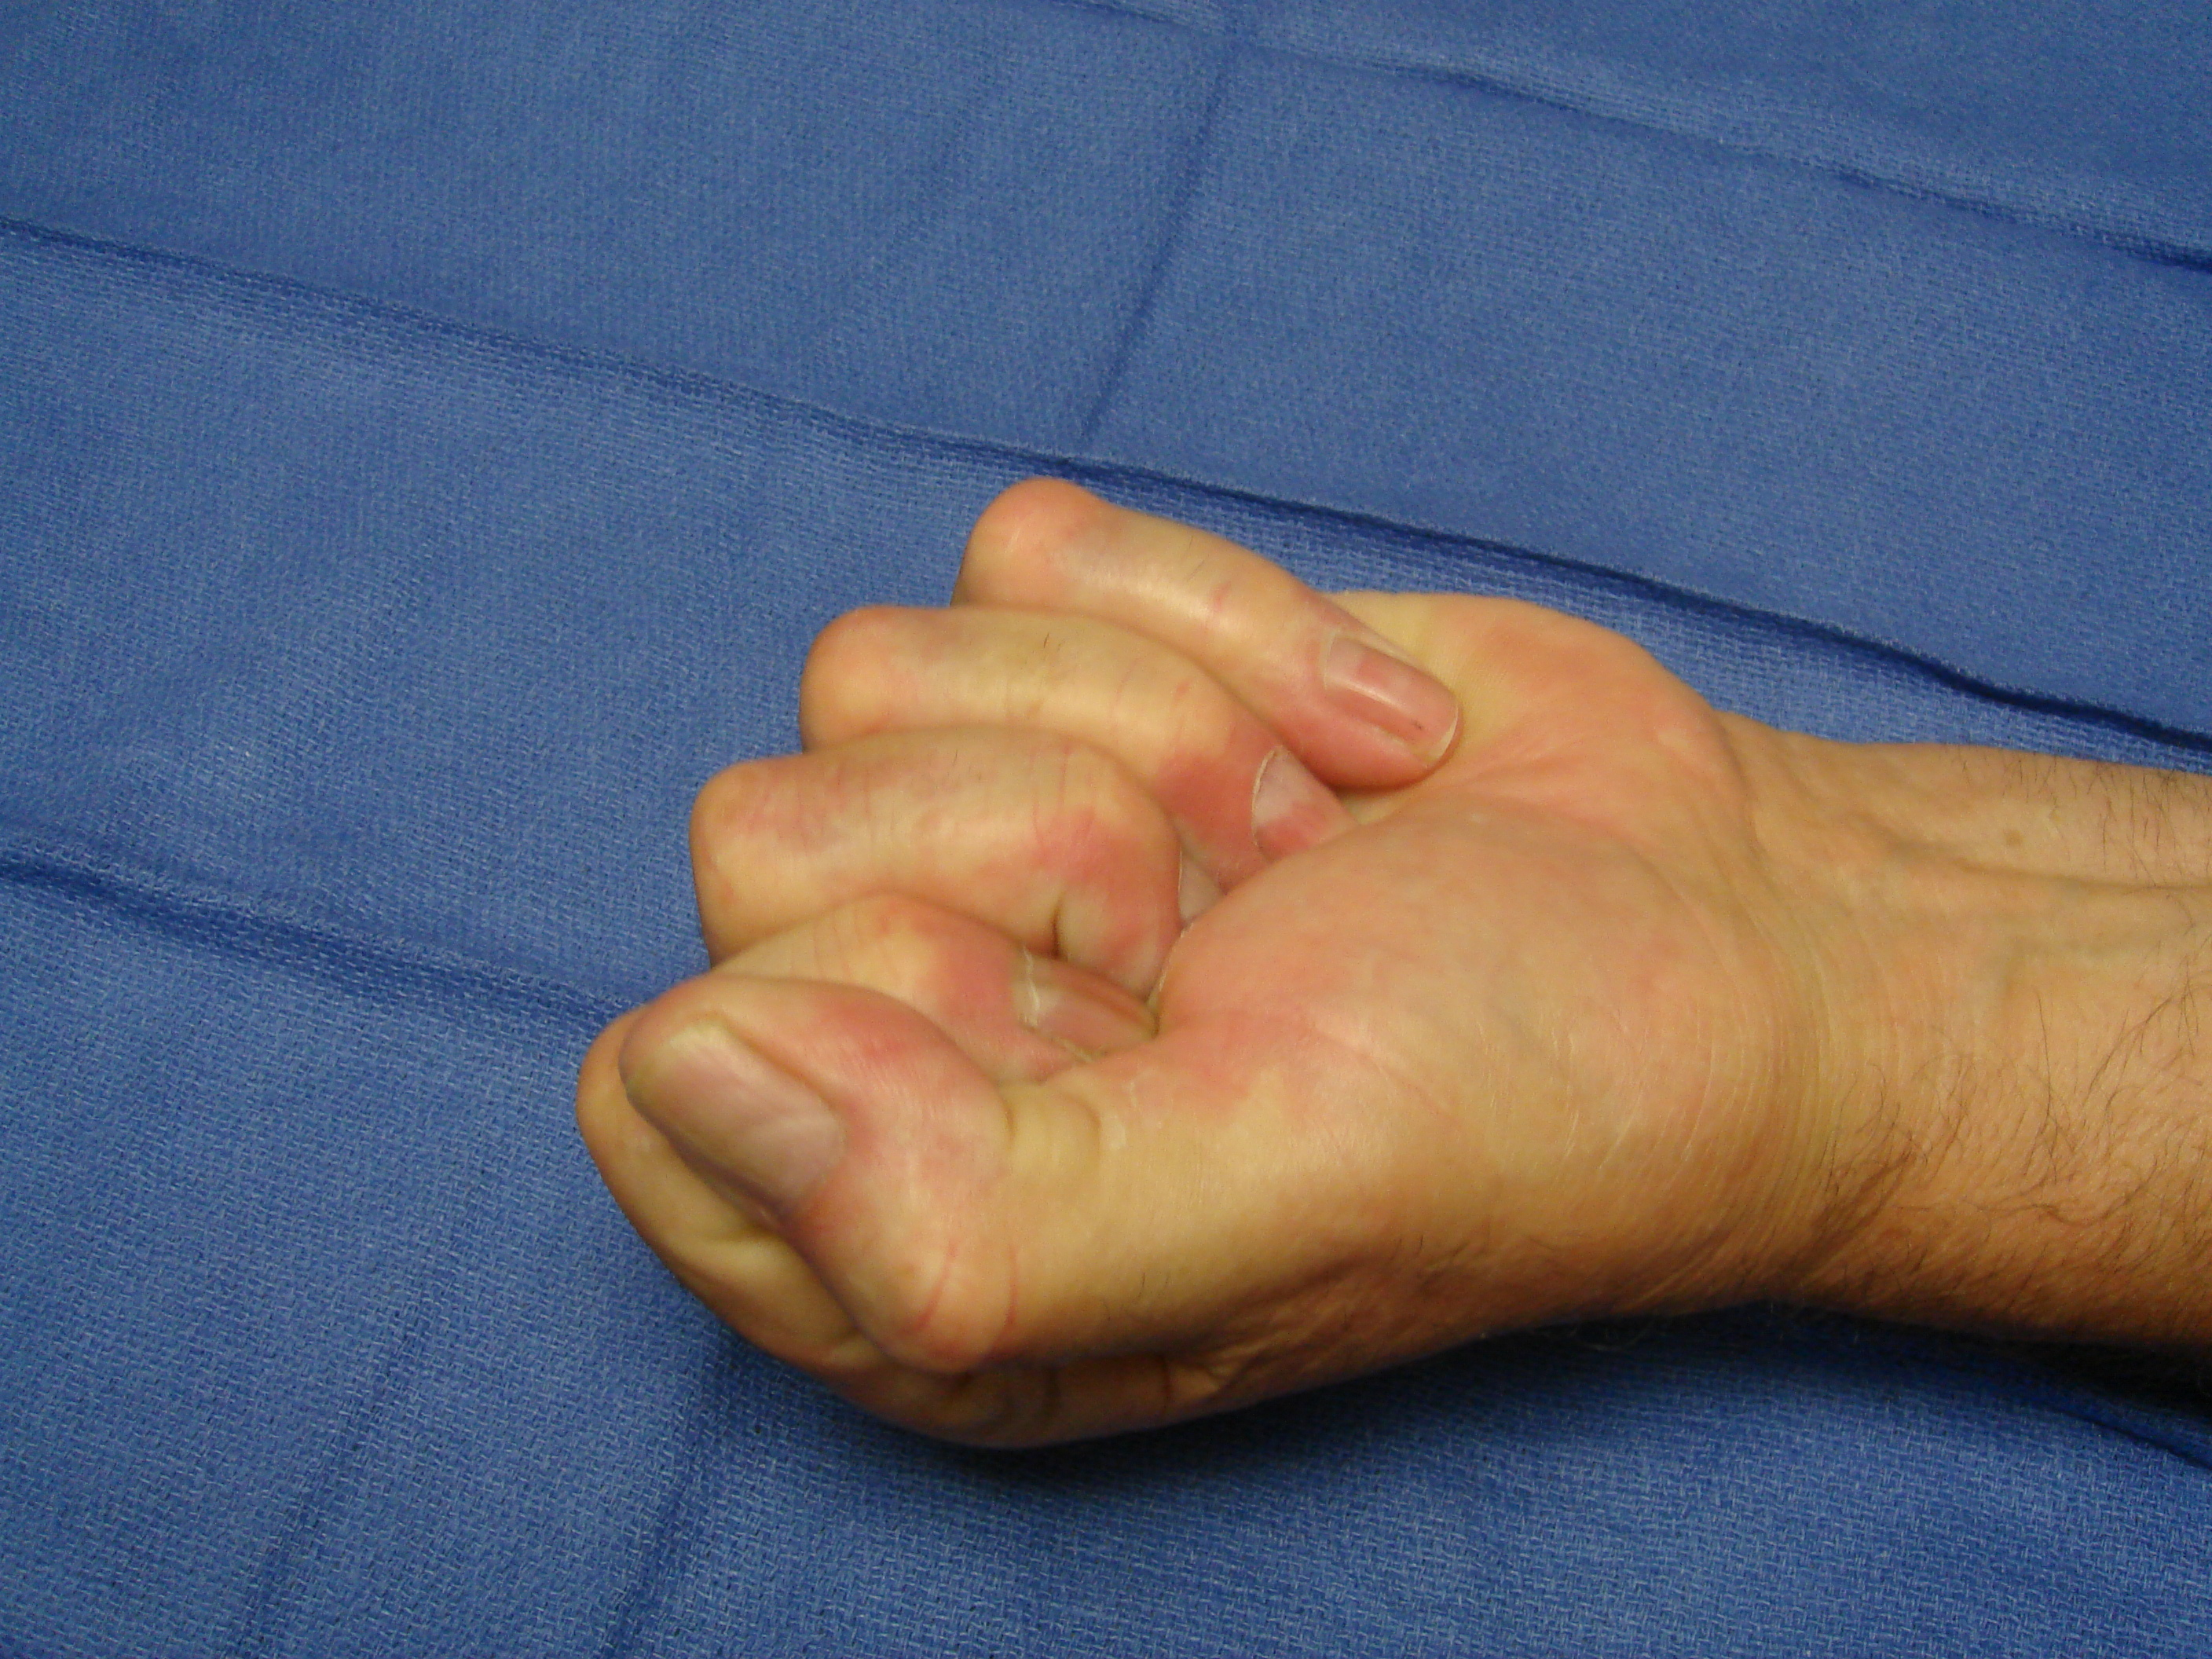 Figure 6c: This patient has advanced post-surgical recurrence of Dupuytren's contracture affecting his left ring and little fingers. There is very limited active and passive ROM. The patient refused to have surgery again, despite dysfunction, but sought collagenase on the advice of a friend who was treated with CCH. Identifiable, palpable cords are present in addition to scar tissue; ultimately, more than 1 treatment cycle was going to be required; treatment started with the little finger.